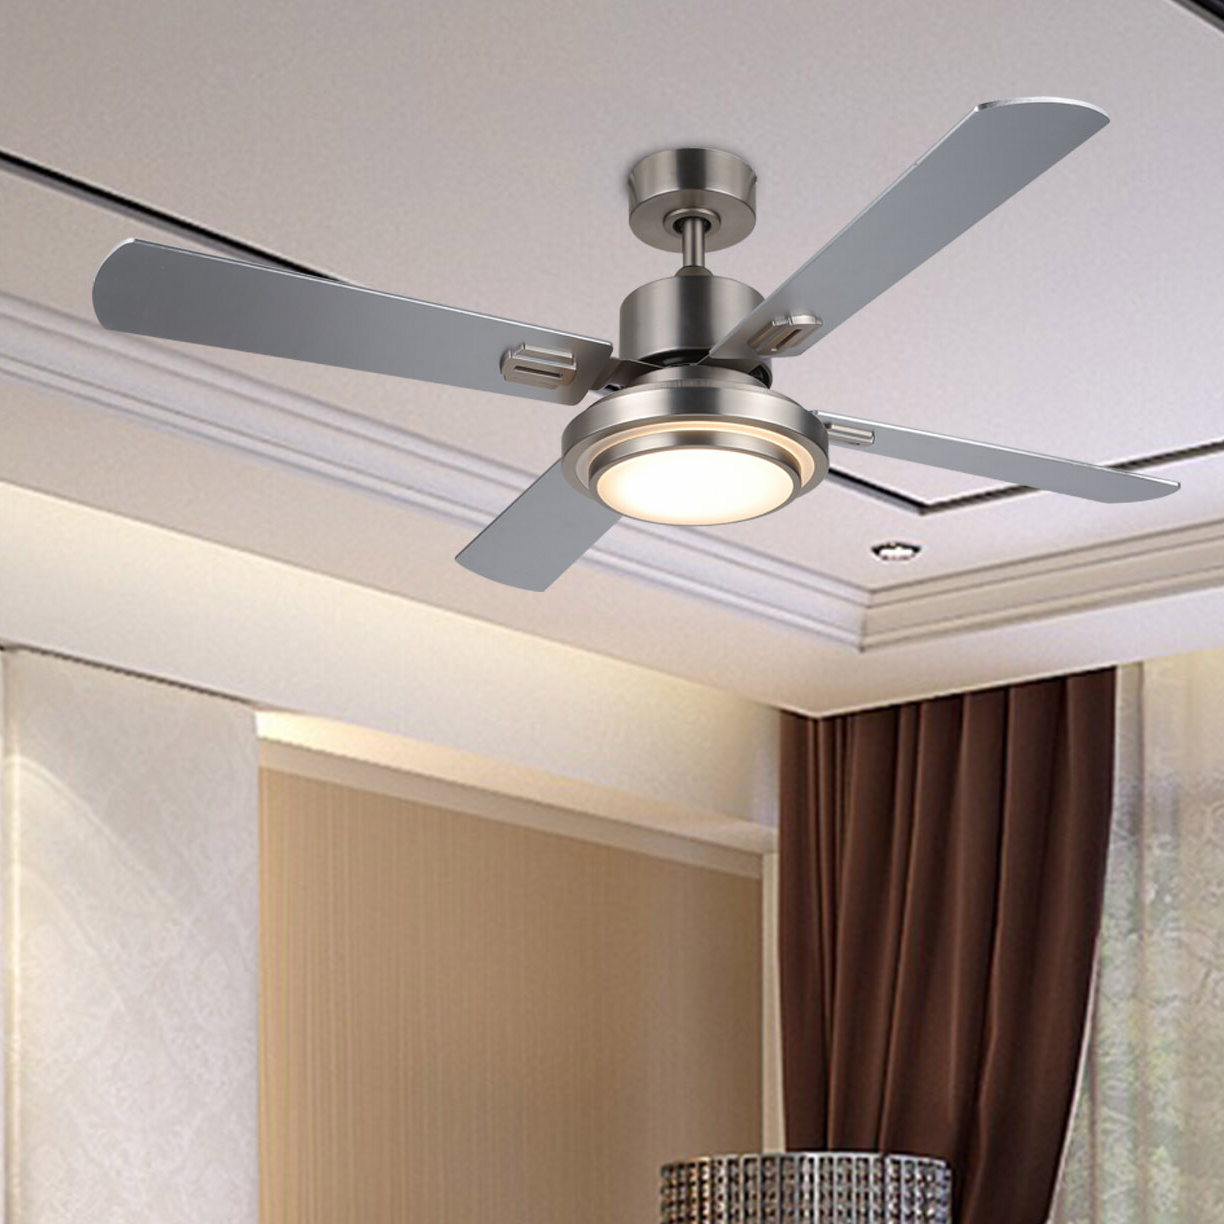 """Preferred Norah 5 Blade Ceiling Fans Pertaining To 52"""" Santaana 4 Blade Led Ceiling Fan With Remote, Light Kit Included (View 16 of 20)"""